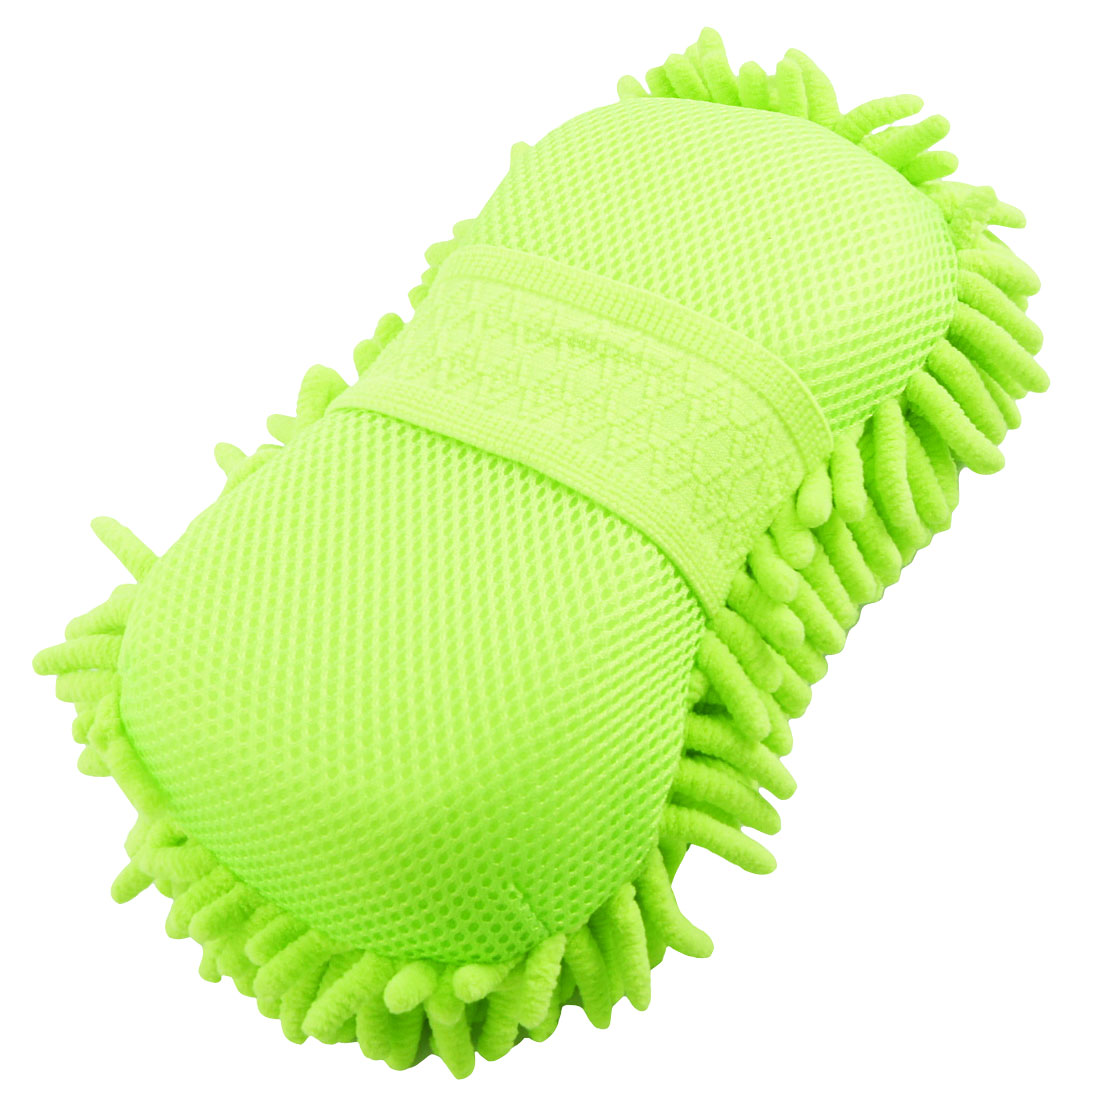 Yellow Green Microfiber Cleaning Sponge Pad for Car Vehicles